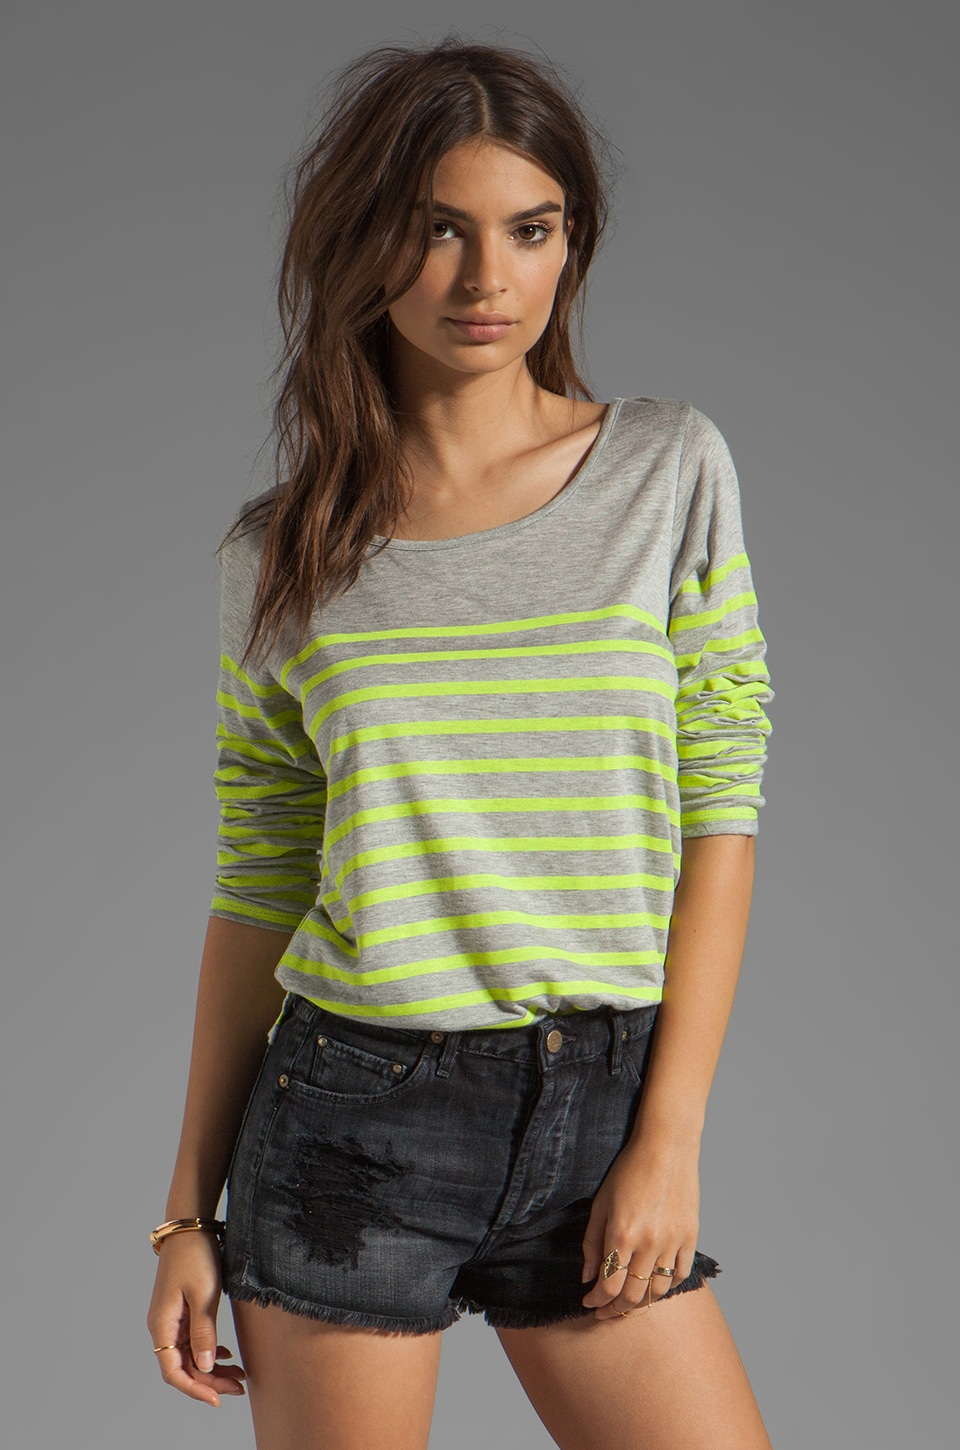 MONROW French Stripe Tee in Heather/Neon Citron